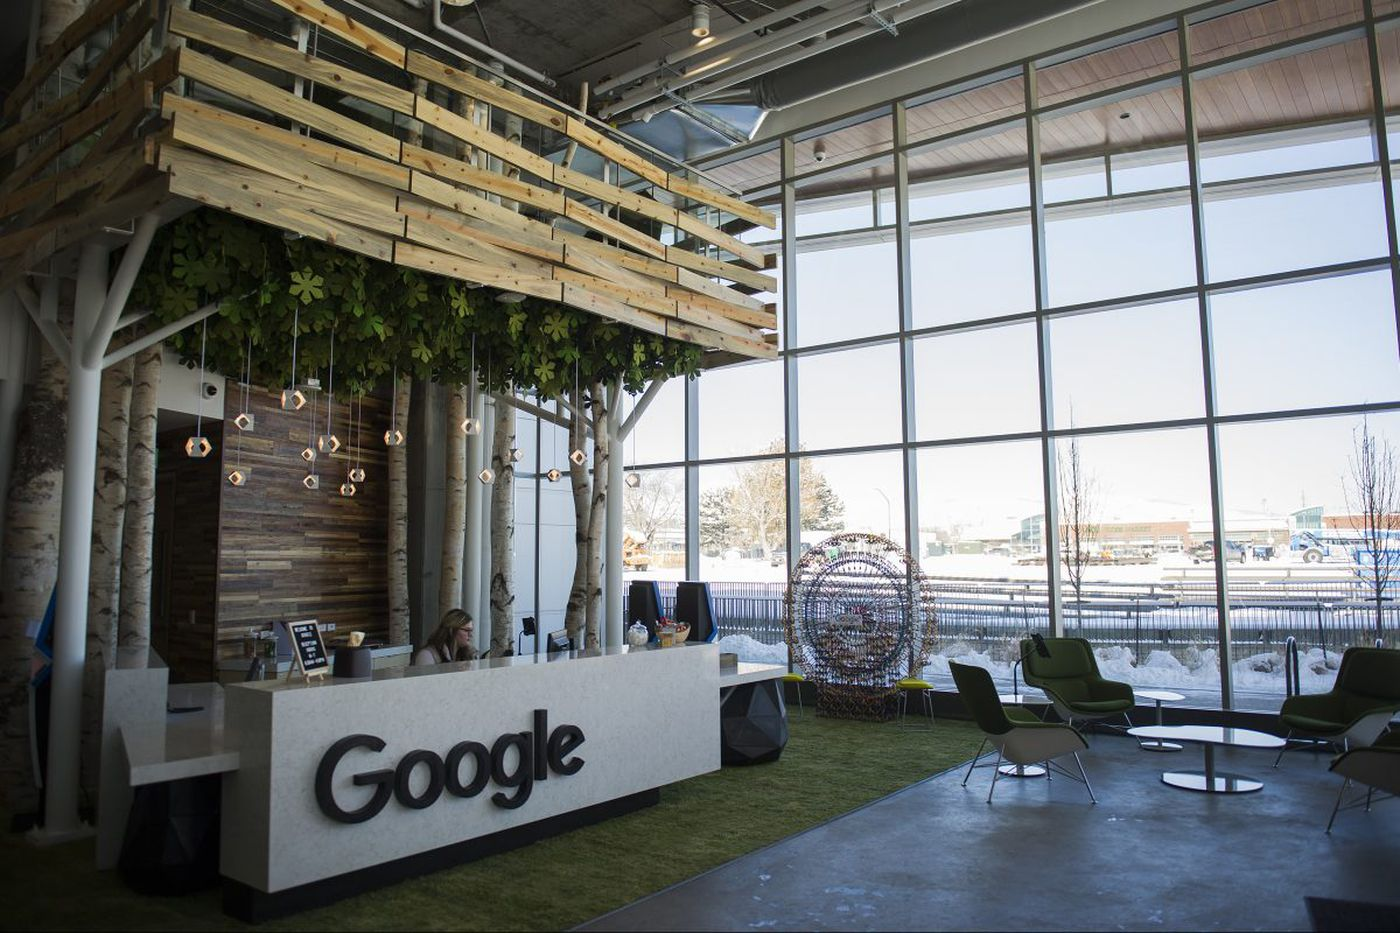 The spotlight is on Facebook, but Google is also in the privacy hot seat